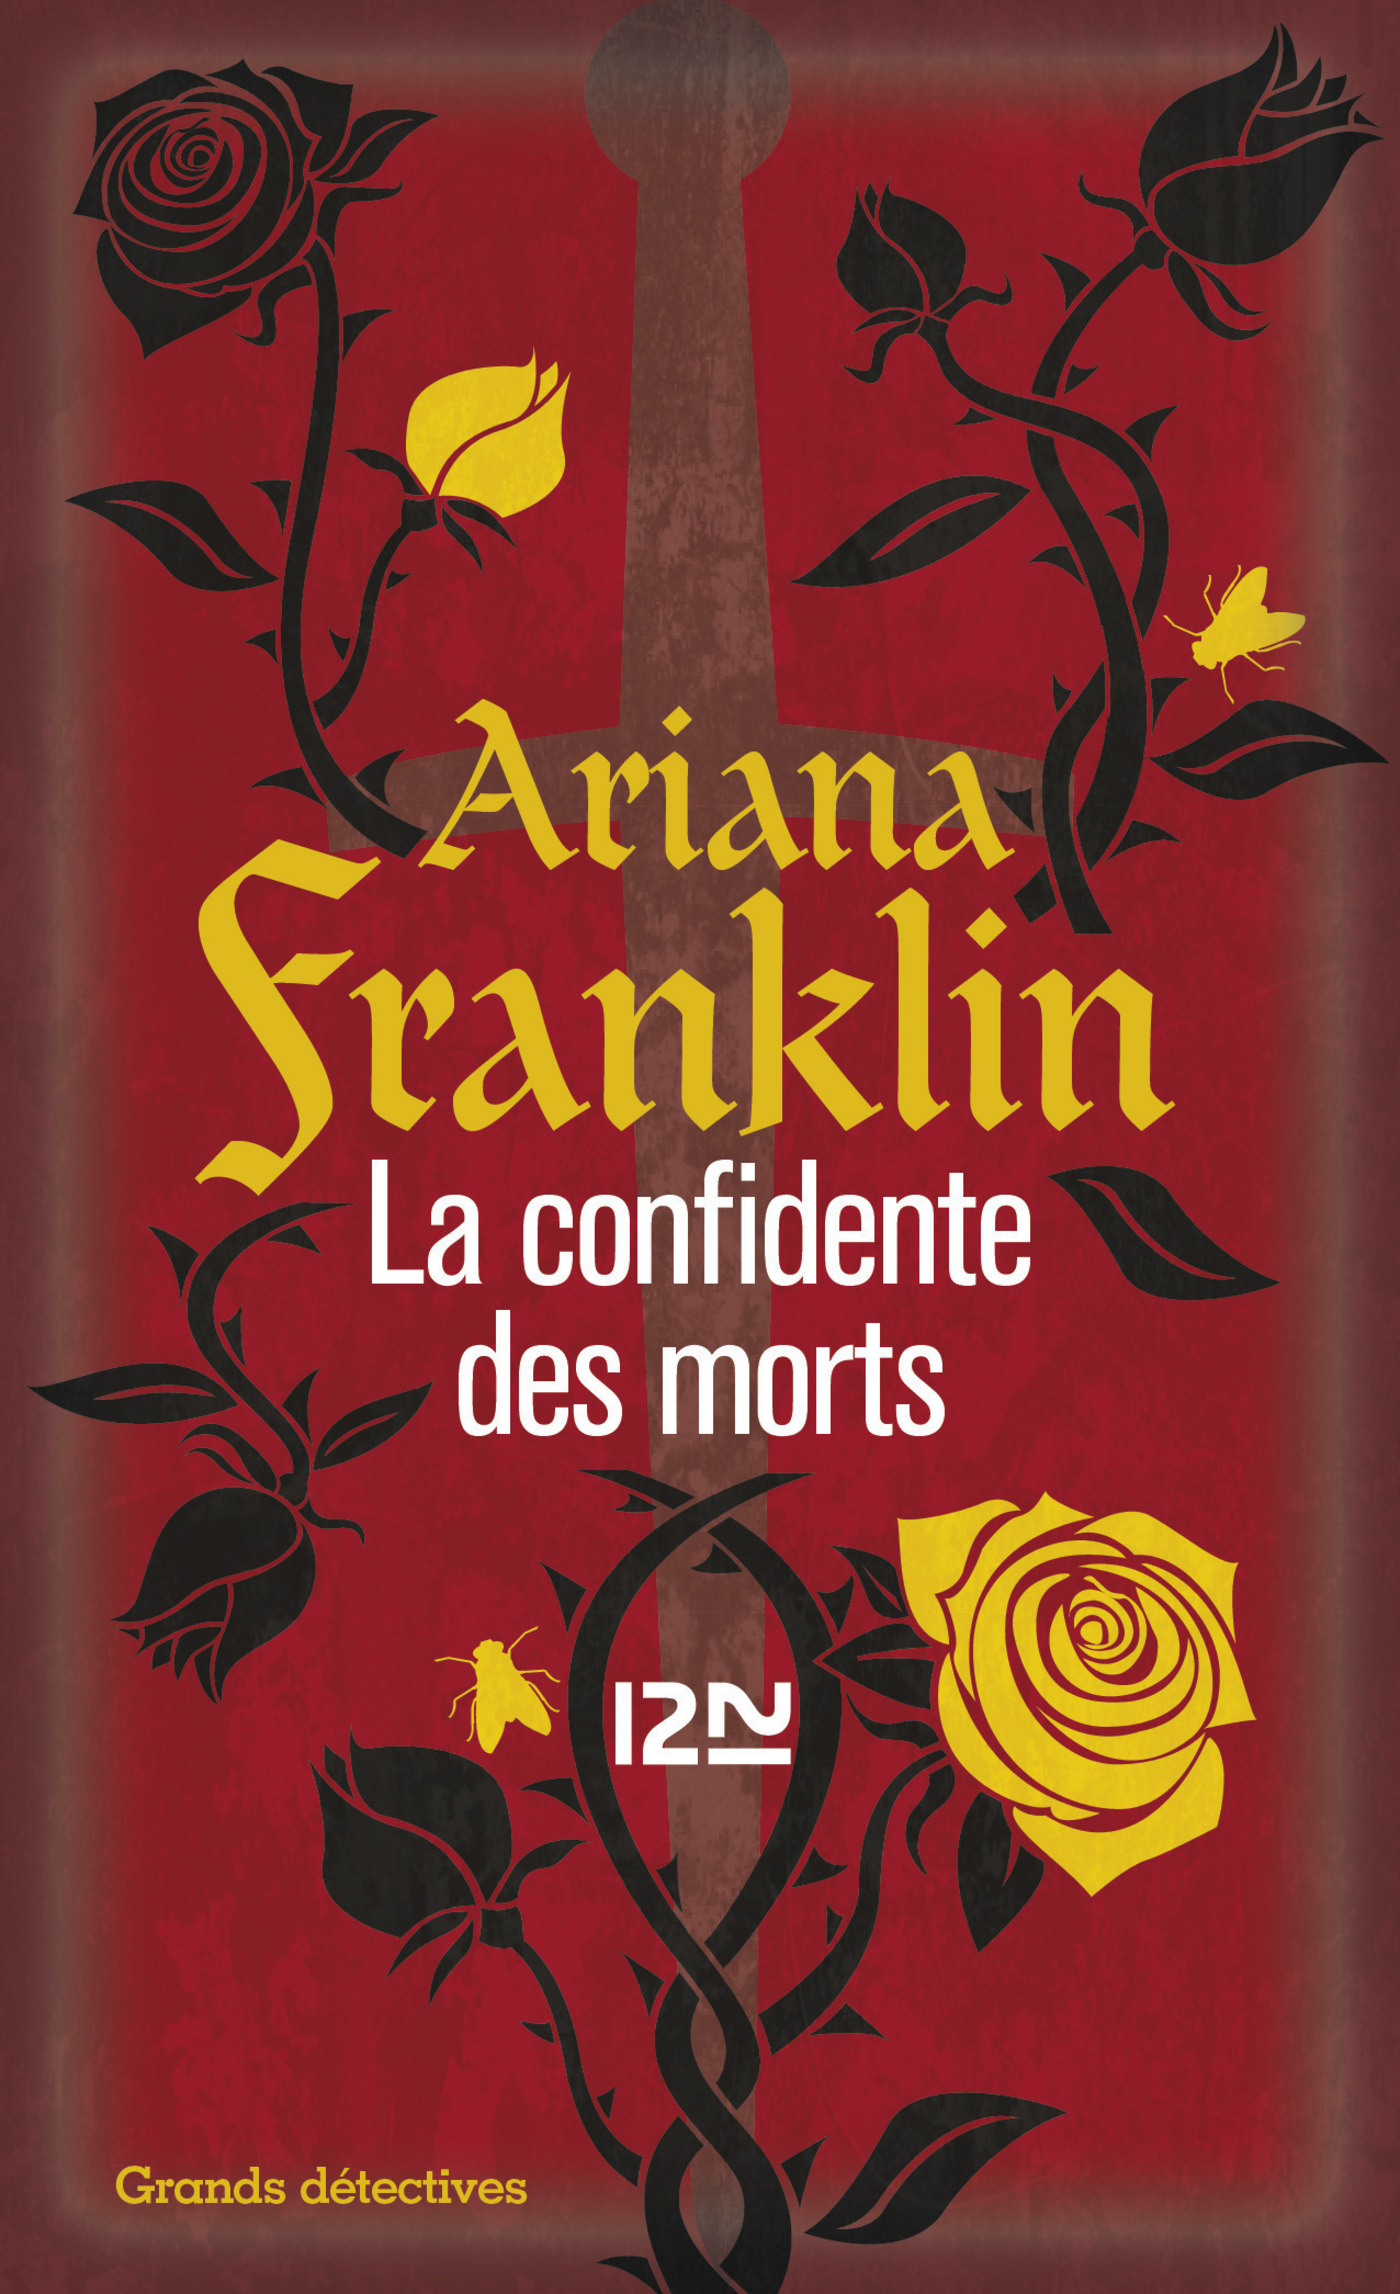 La confidente des morts